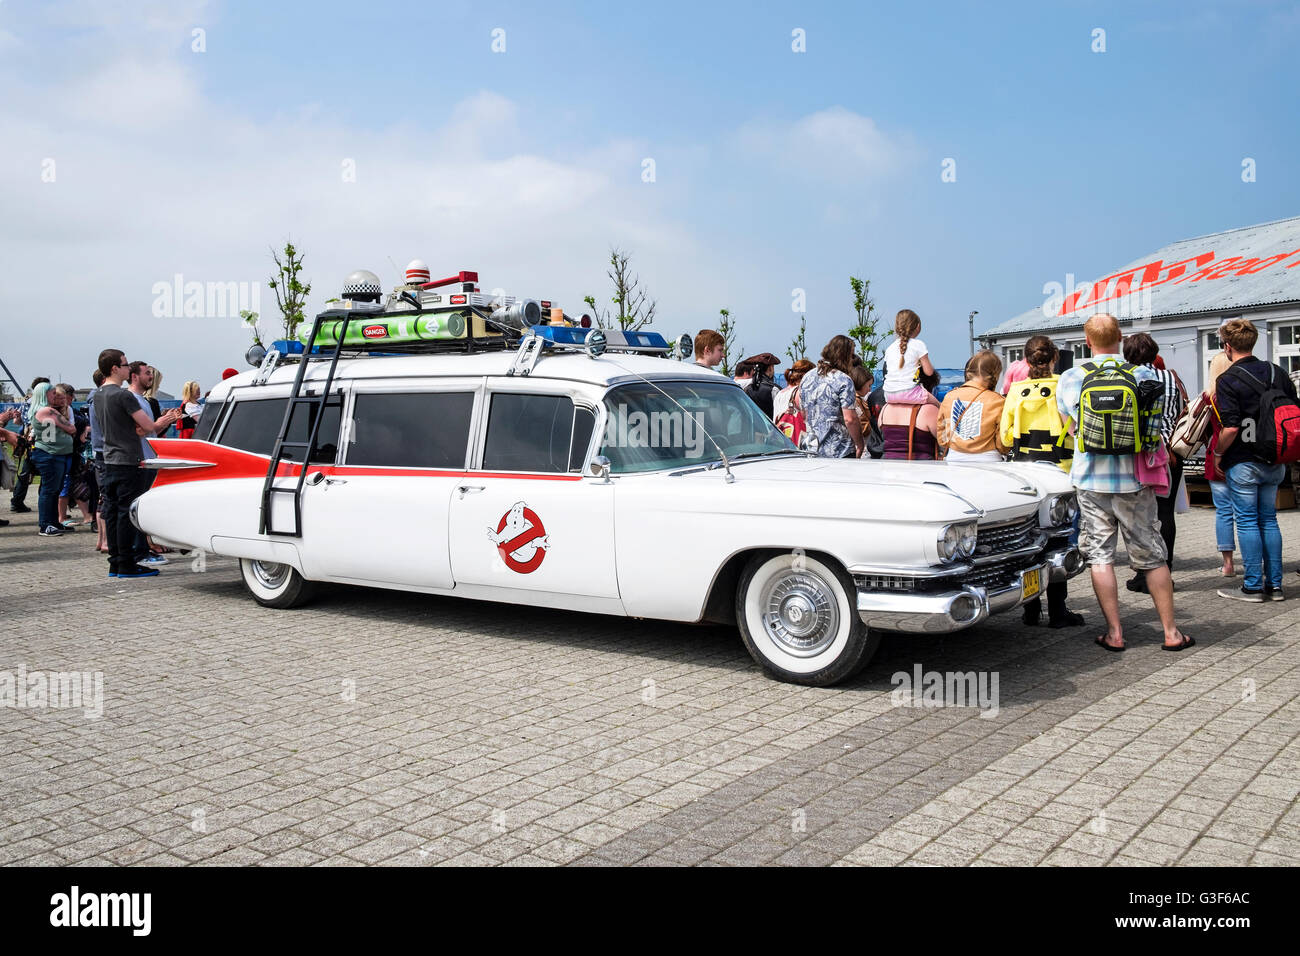 A replica of ecto 1 the cadillac used in the original ghostbusters movie